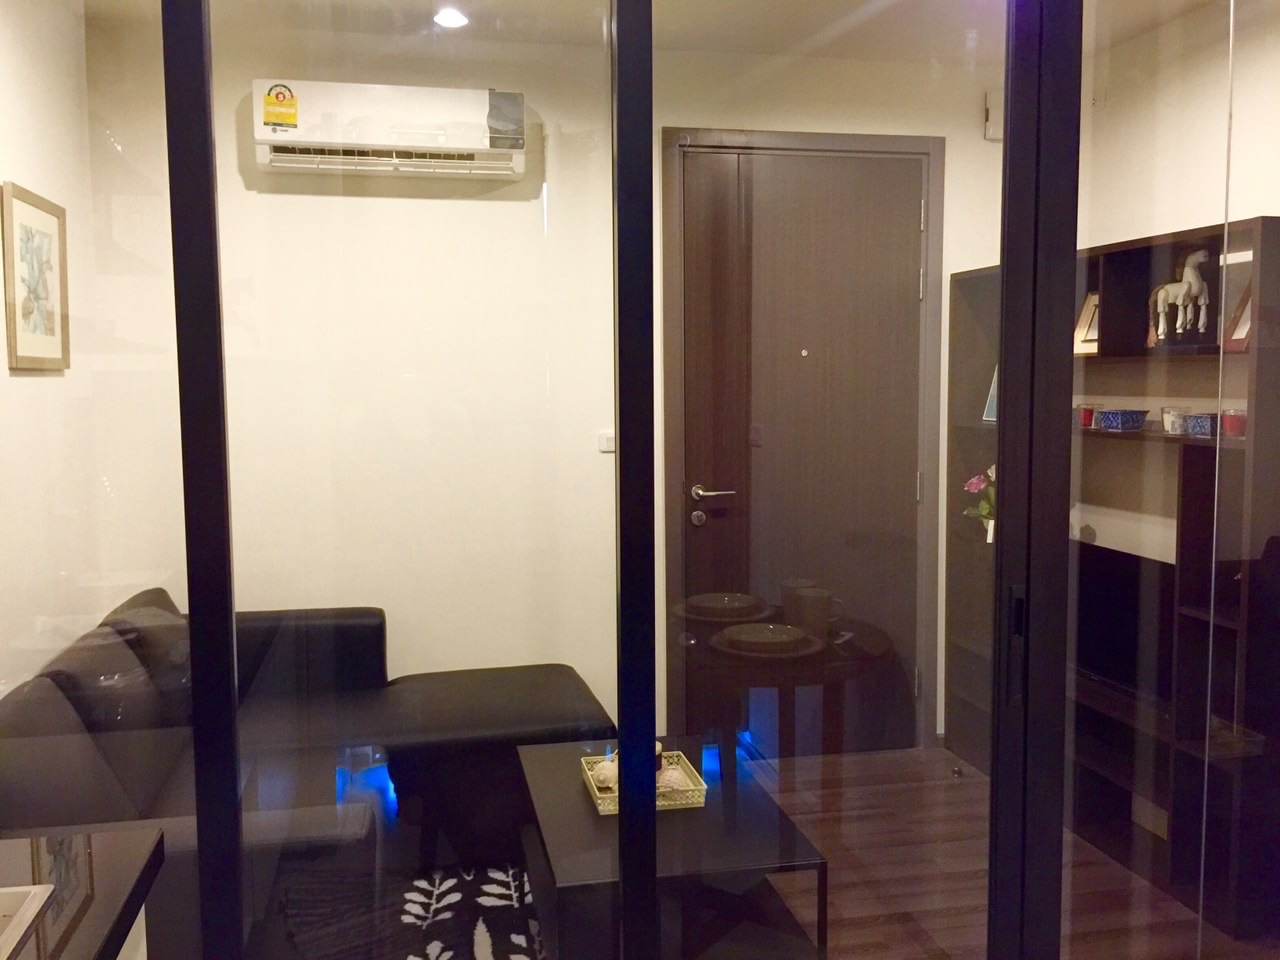 RE/MAX All Star Realty Agency's Ful furnished one bedder for rent 13,800 Baht at On Nut BTS – Basepark East (Soi 77) 4